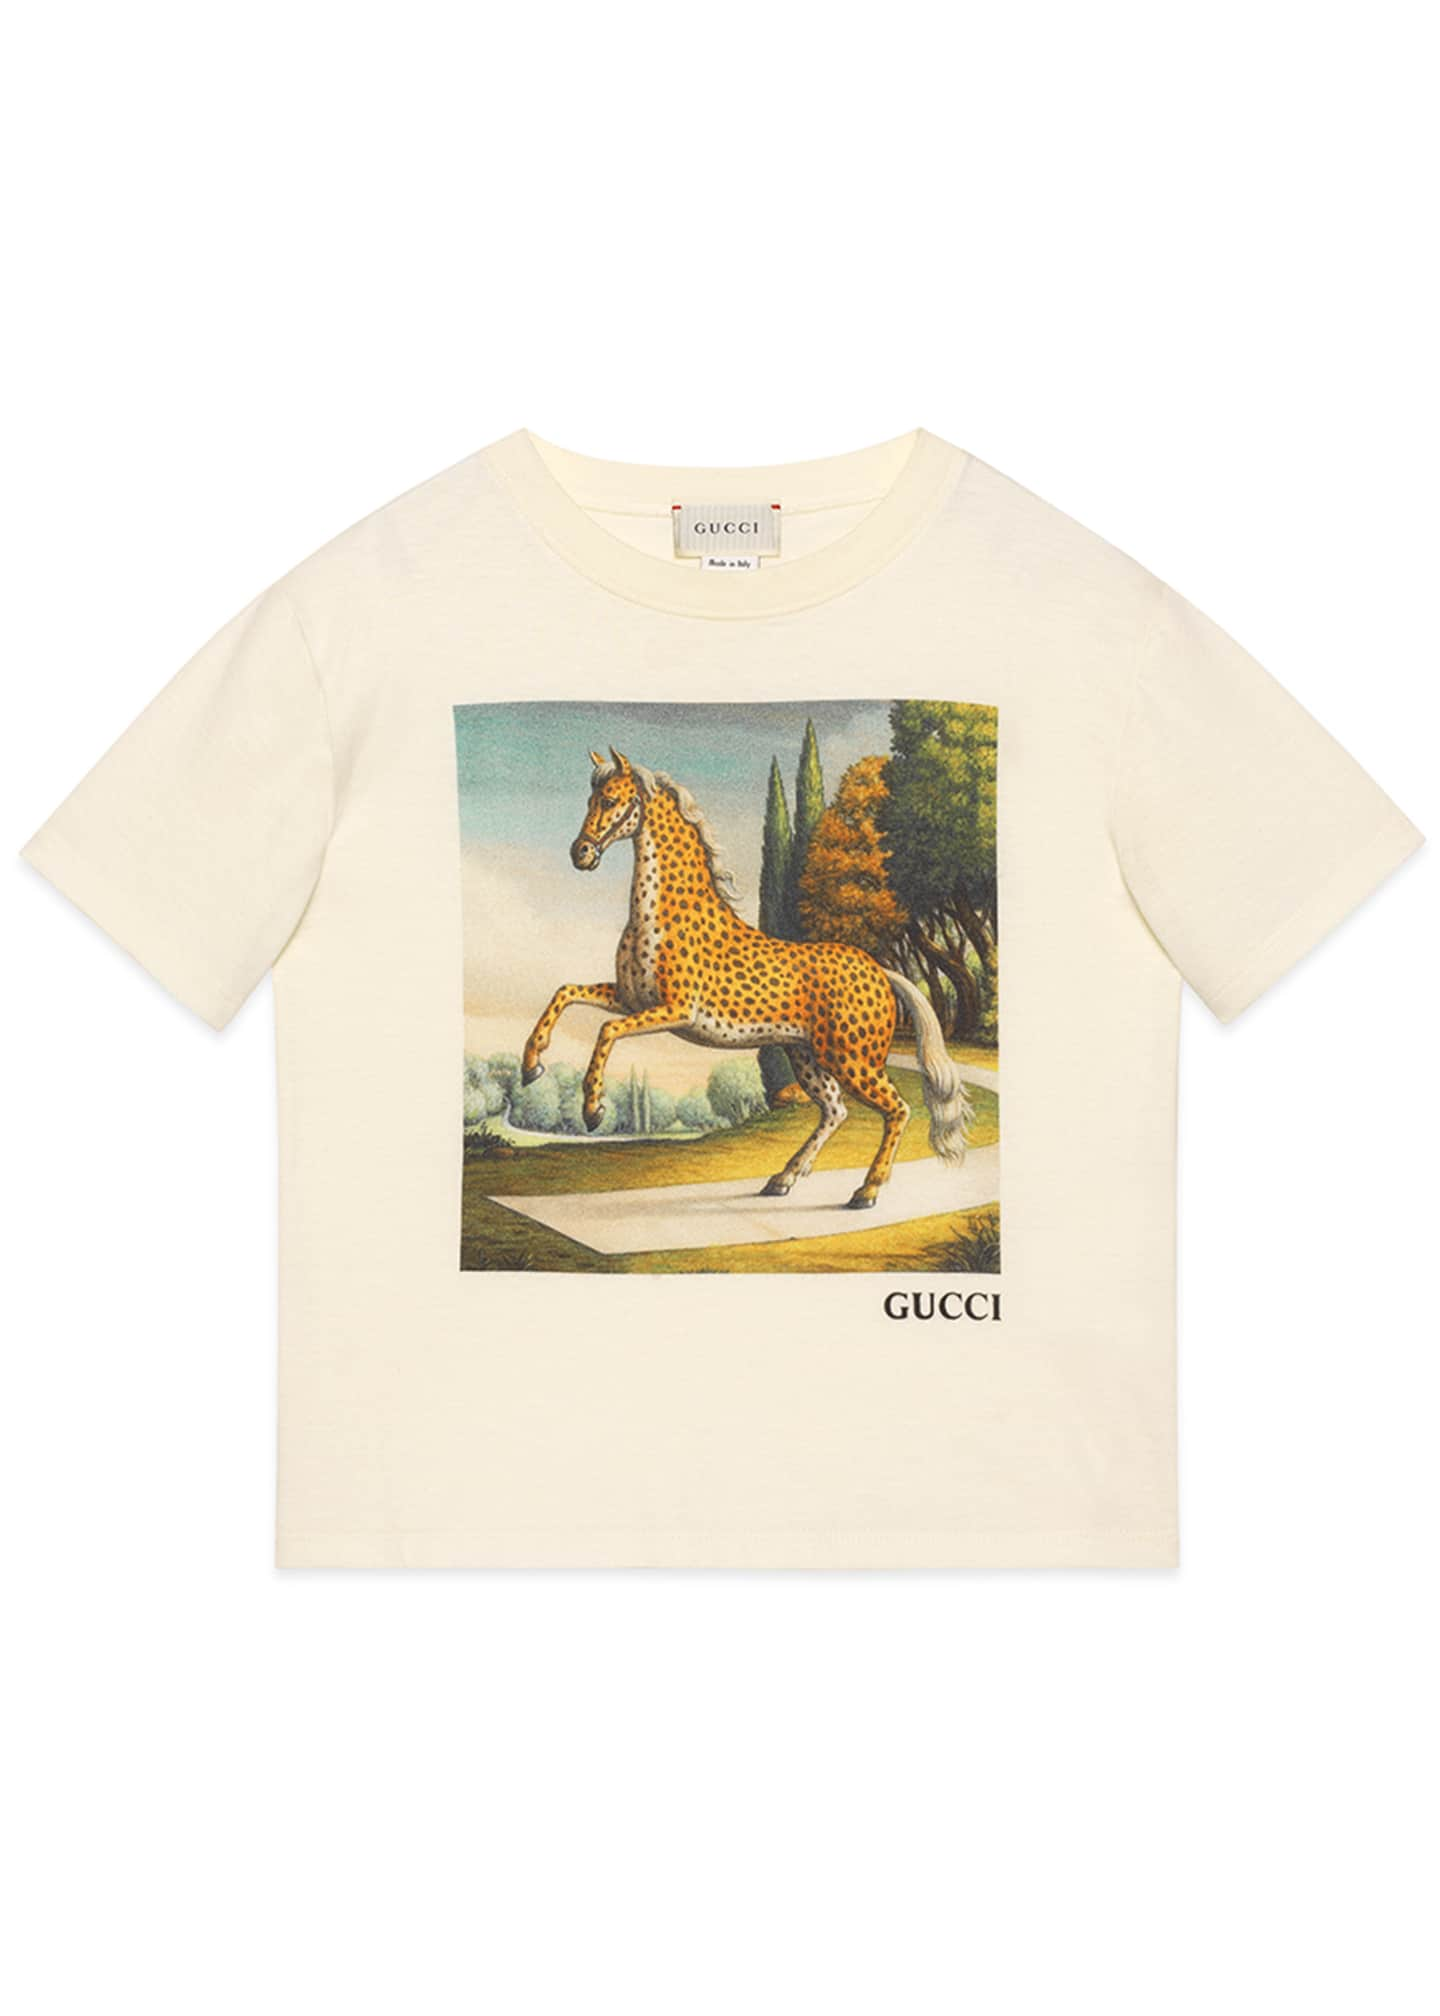 Gucci Kid's Horse Graphic Short-Sleeve T-Shirt, Size 4-12